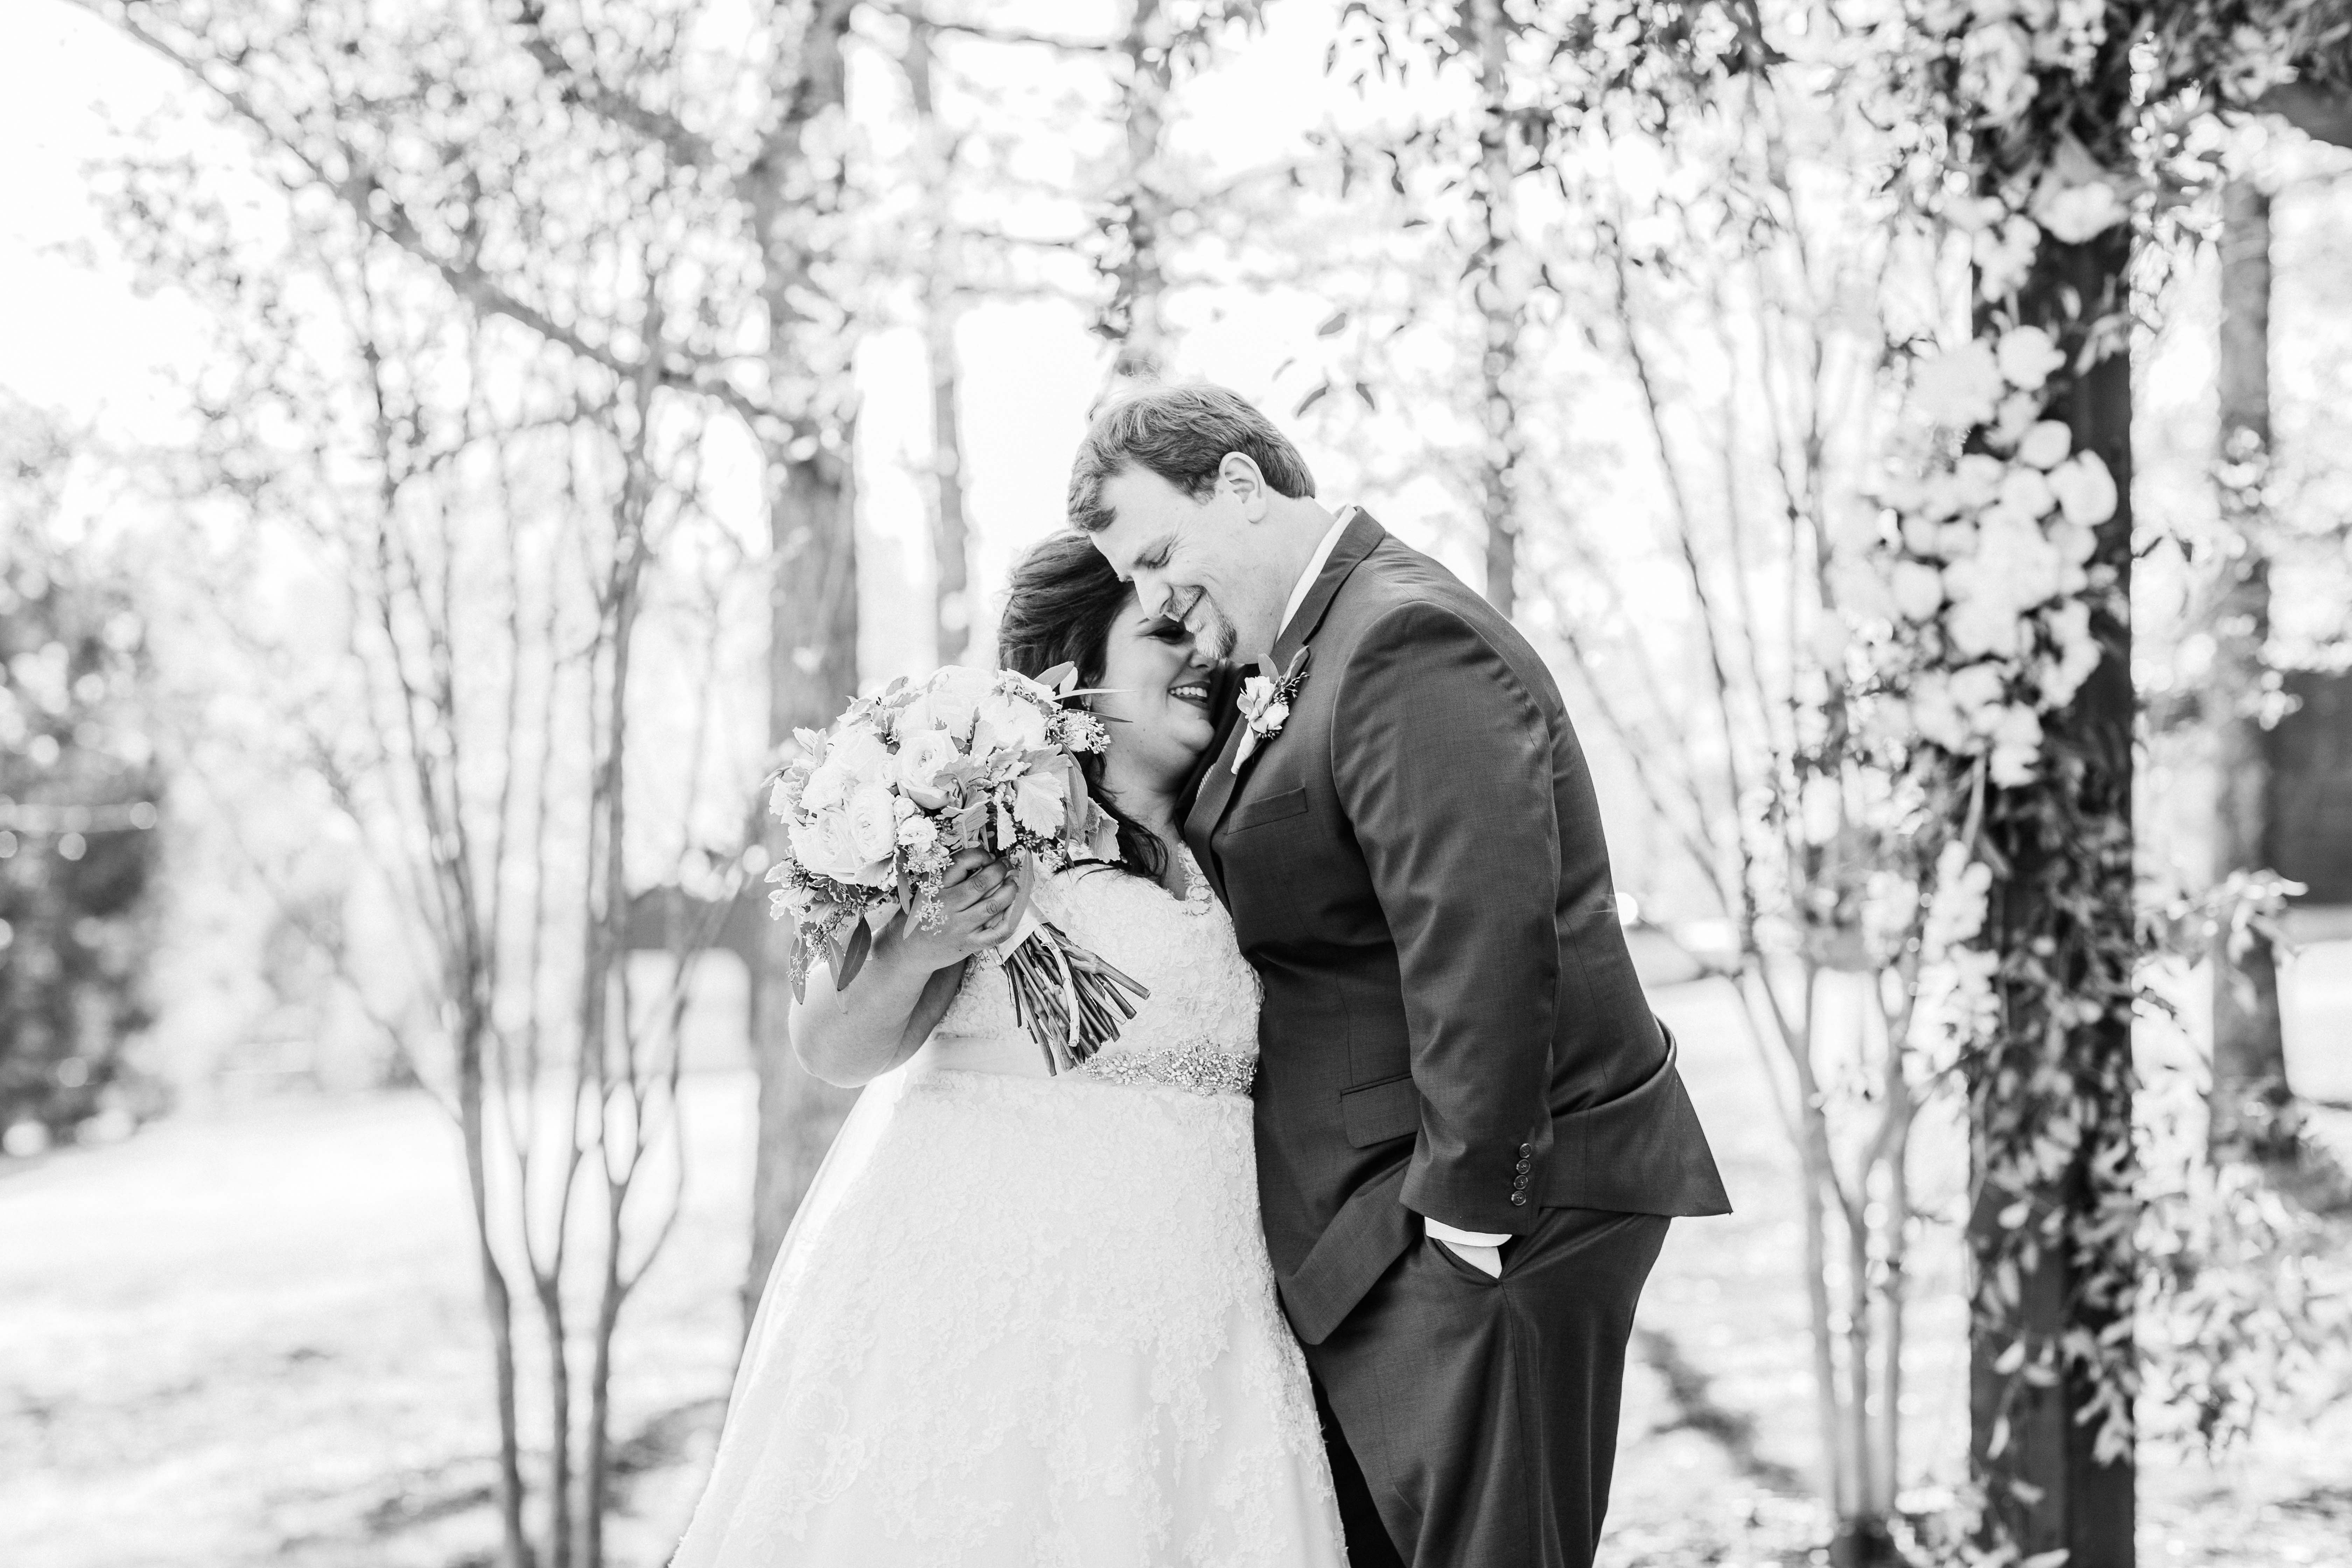 CAHOON_WEDDING_BIRMINGHAM_ALABAMA_WEDDING_PHOTOGRAPHY_65